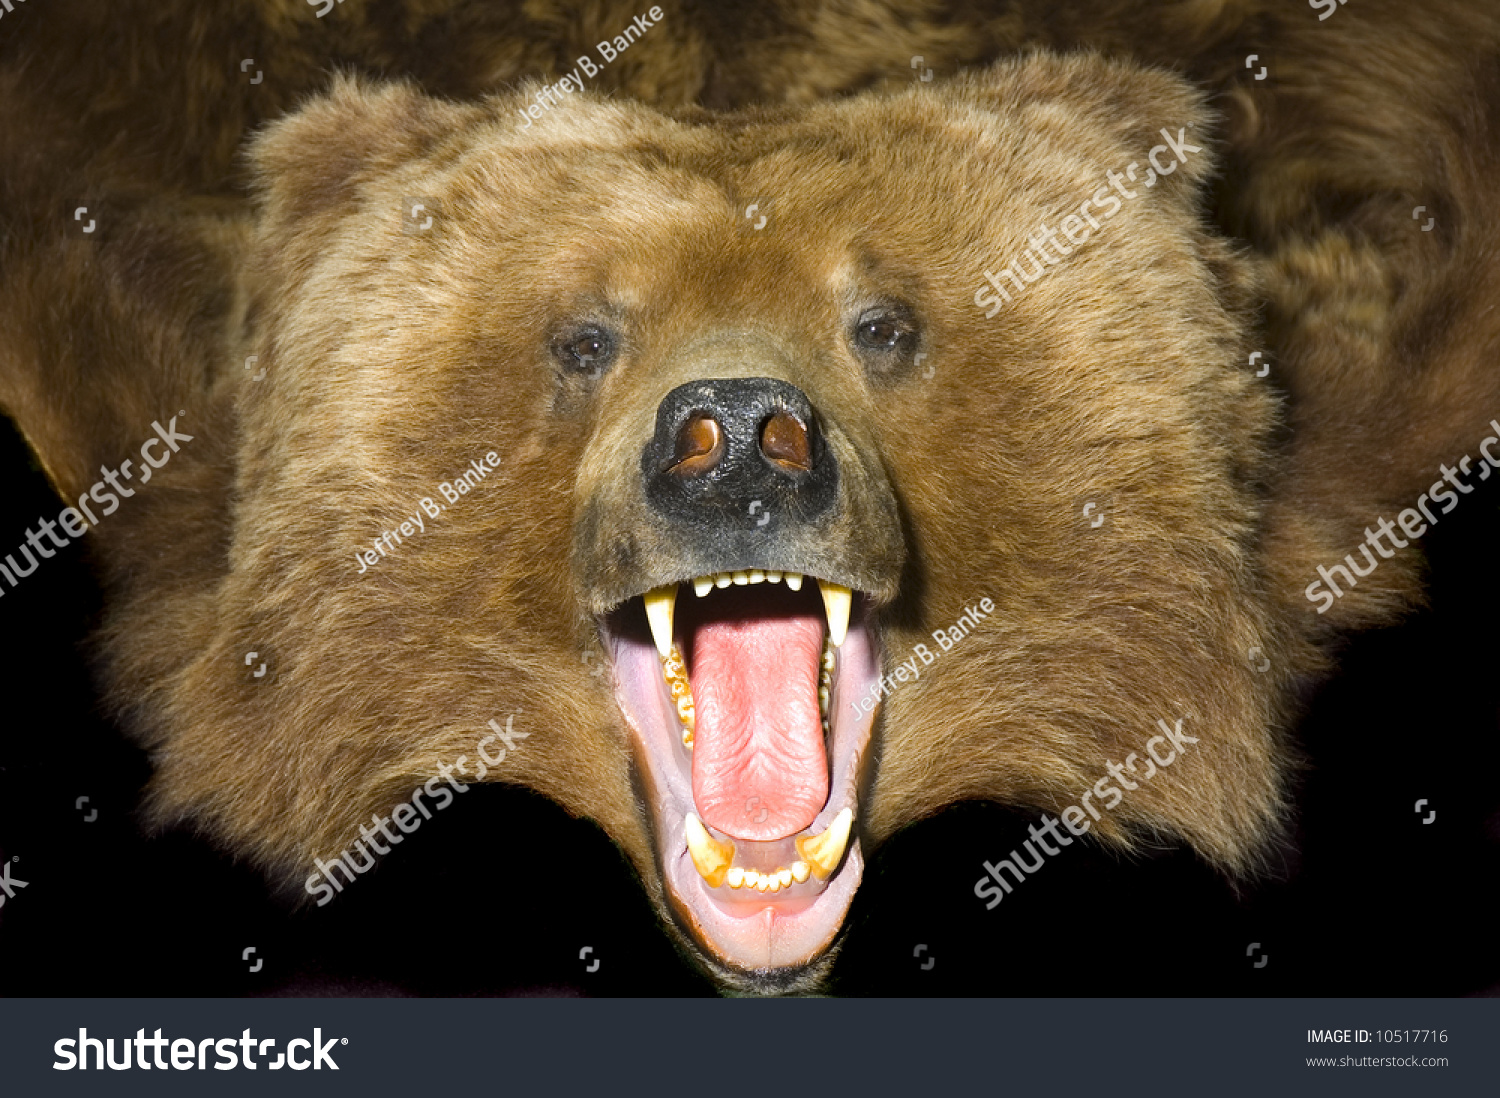 Grizzly Bear Rug With Close Up Of Head Showing Teeth